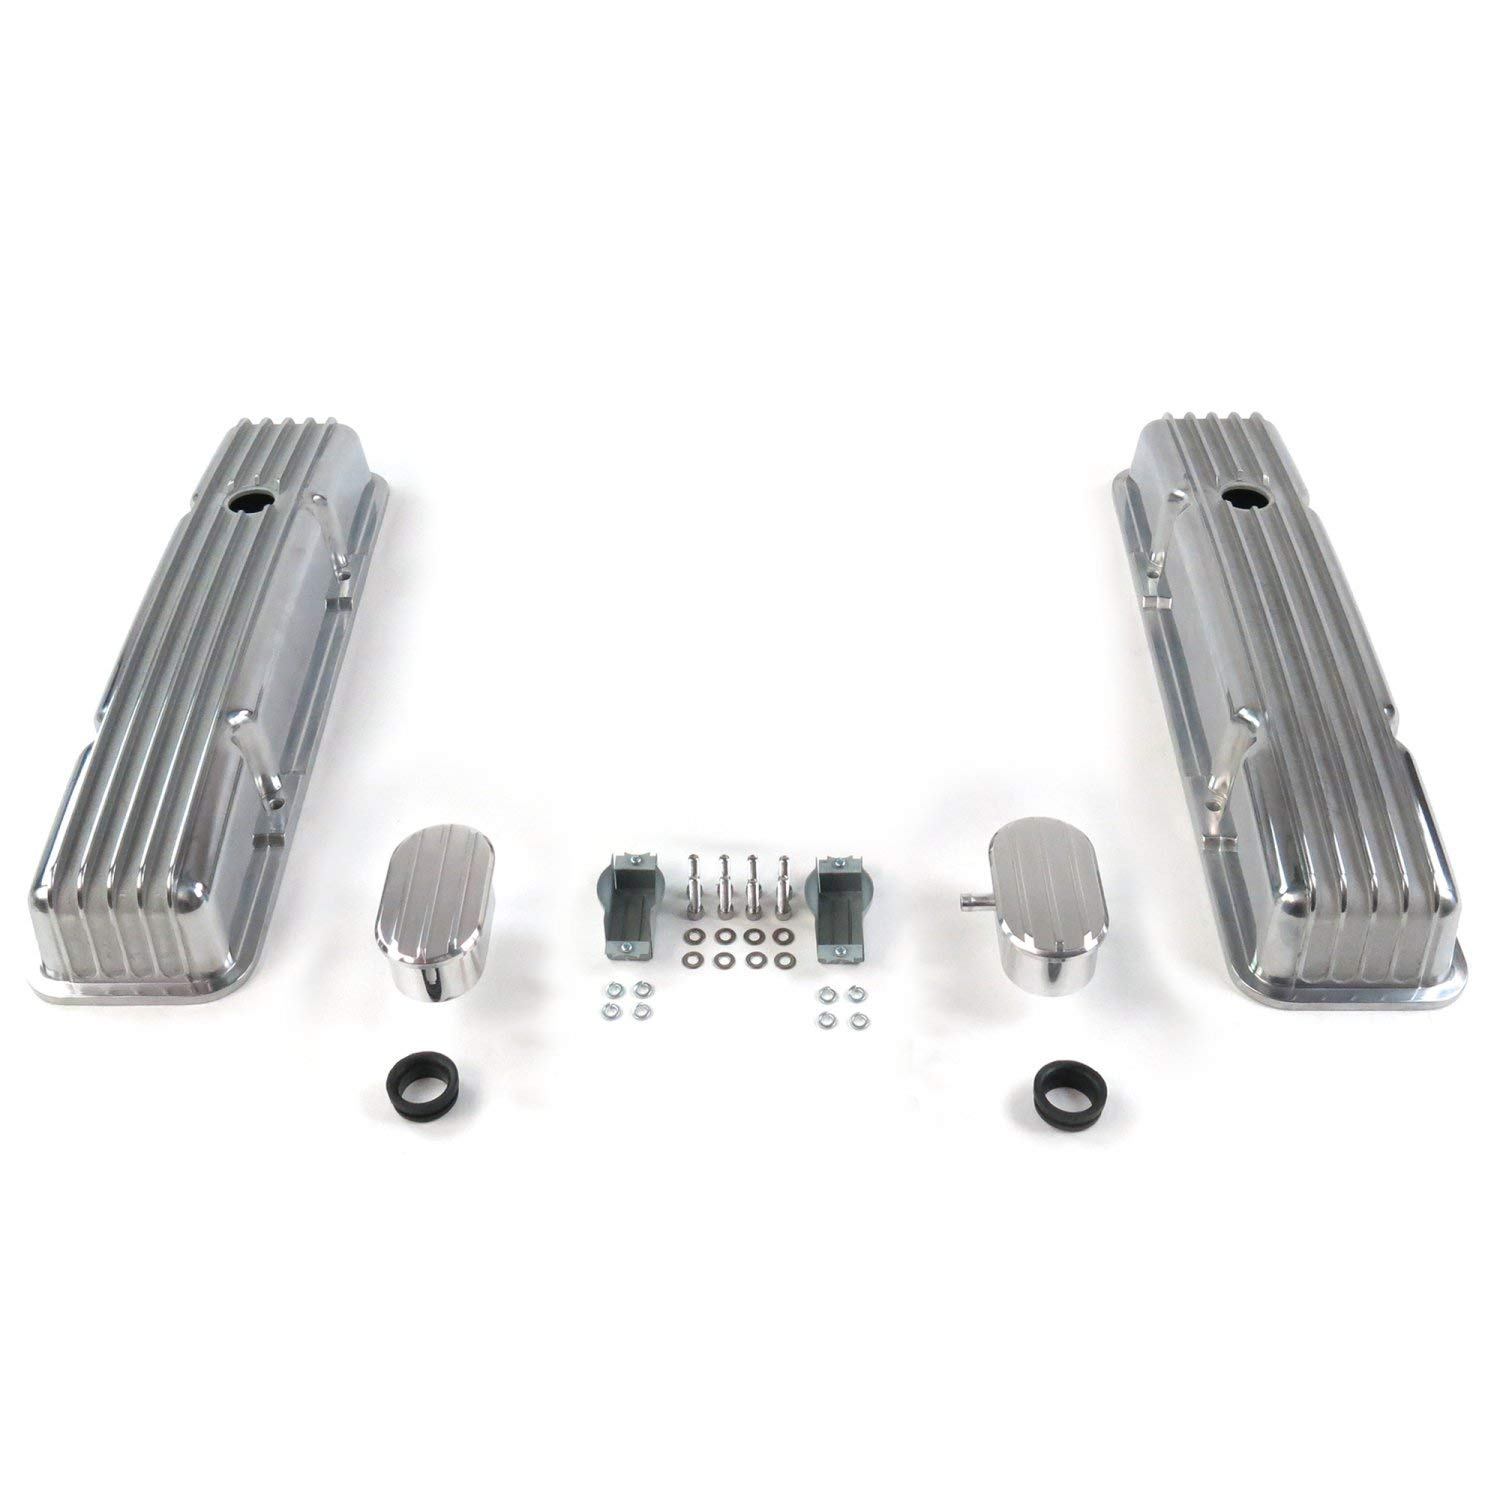 ~Small Block Chevy PCV Vintage Parts 333777 Vintage Tall Finned Valve Coverswith Breathers 1 Pack